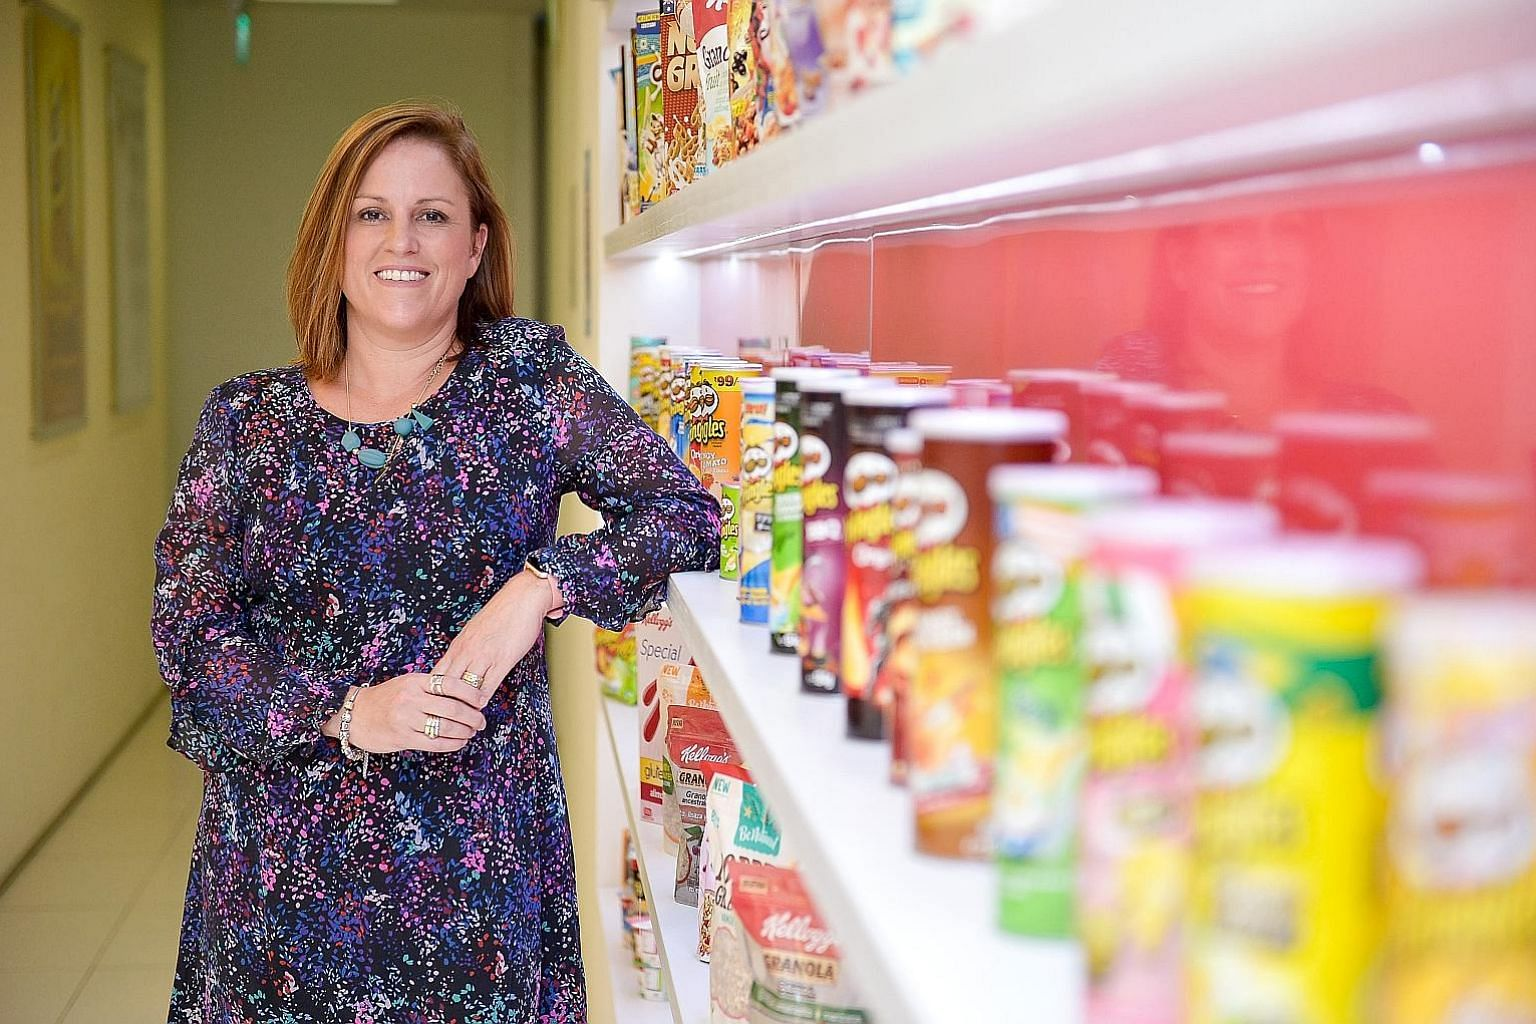 Ms Belinda Tumbers, managing director of Kellogg's Asia, Middle East and Africa snacks business, says the way people are becoming more health-conscious in Singapore is seen across the region too. Kellogg's acquired potato chips brand Pringles in 2012